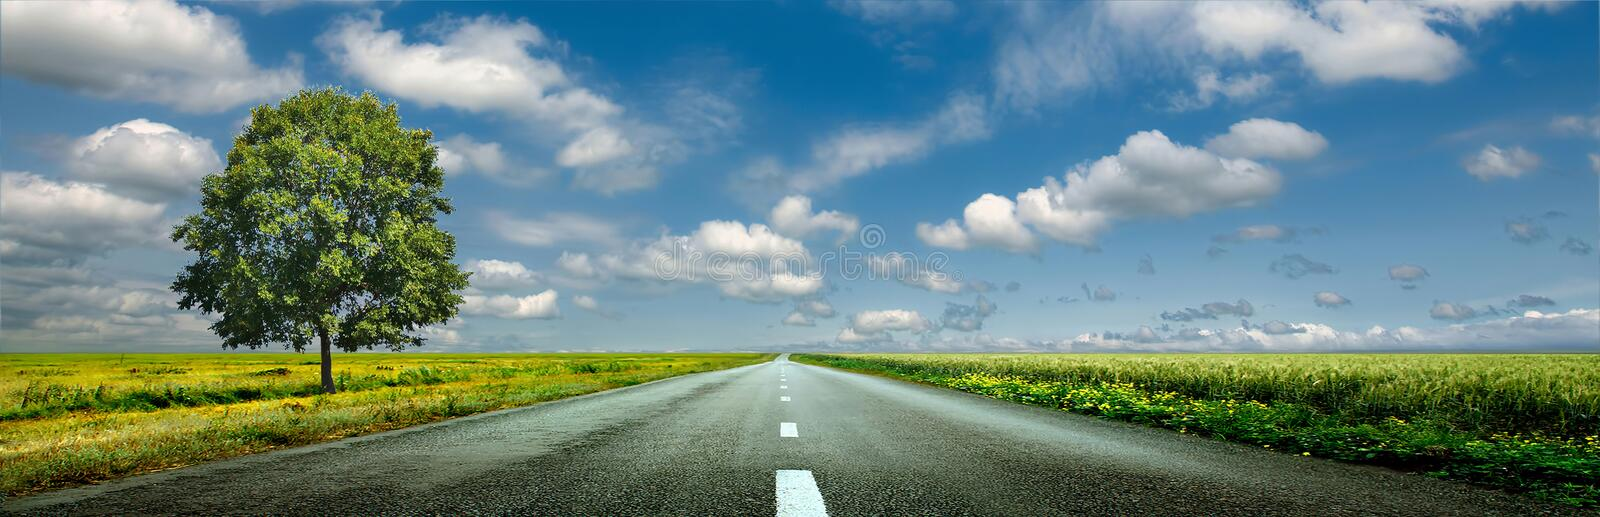 Asphalt road, fields of wheat royalty free stock images